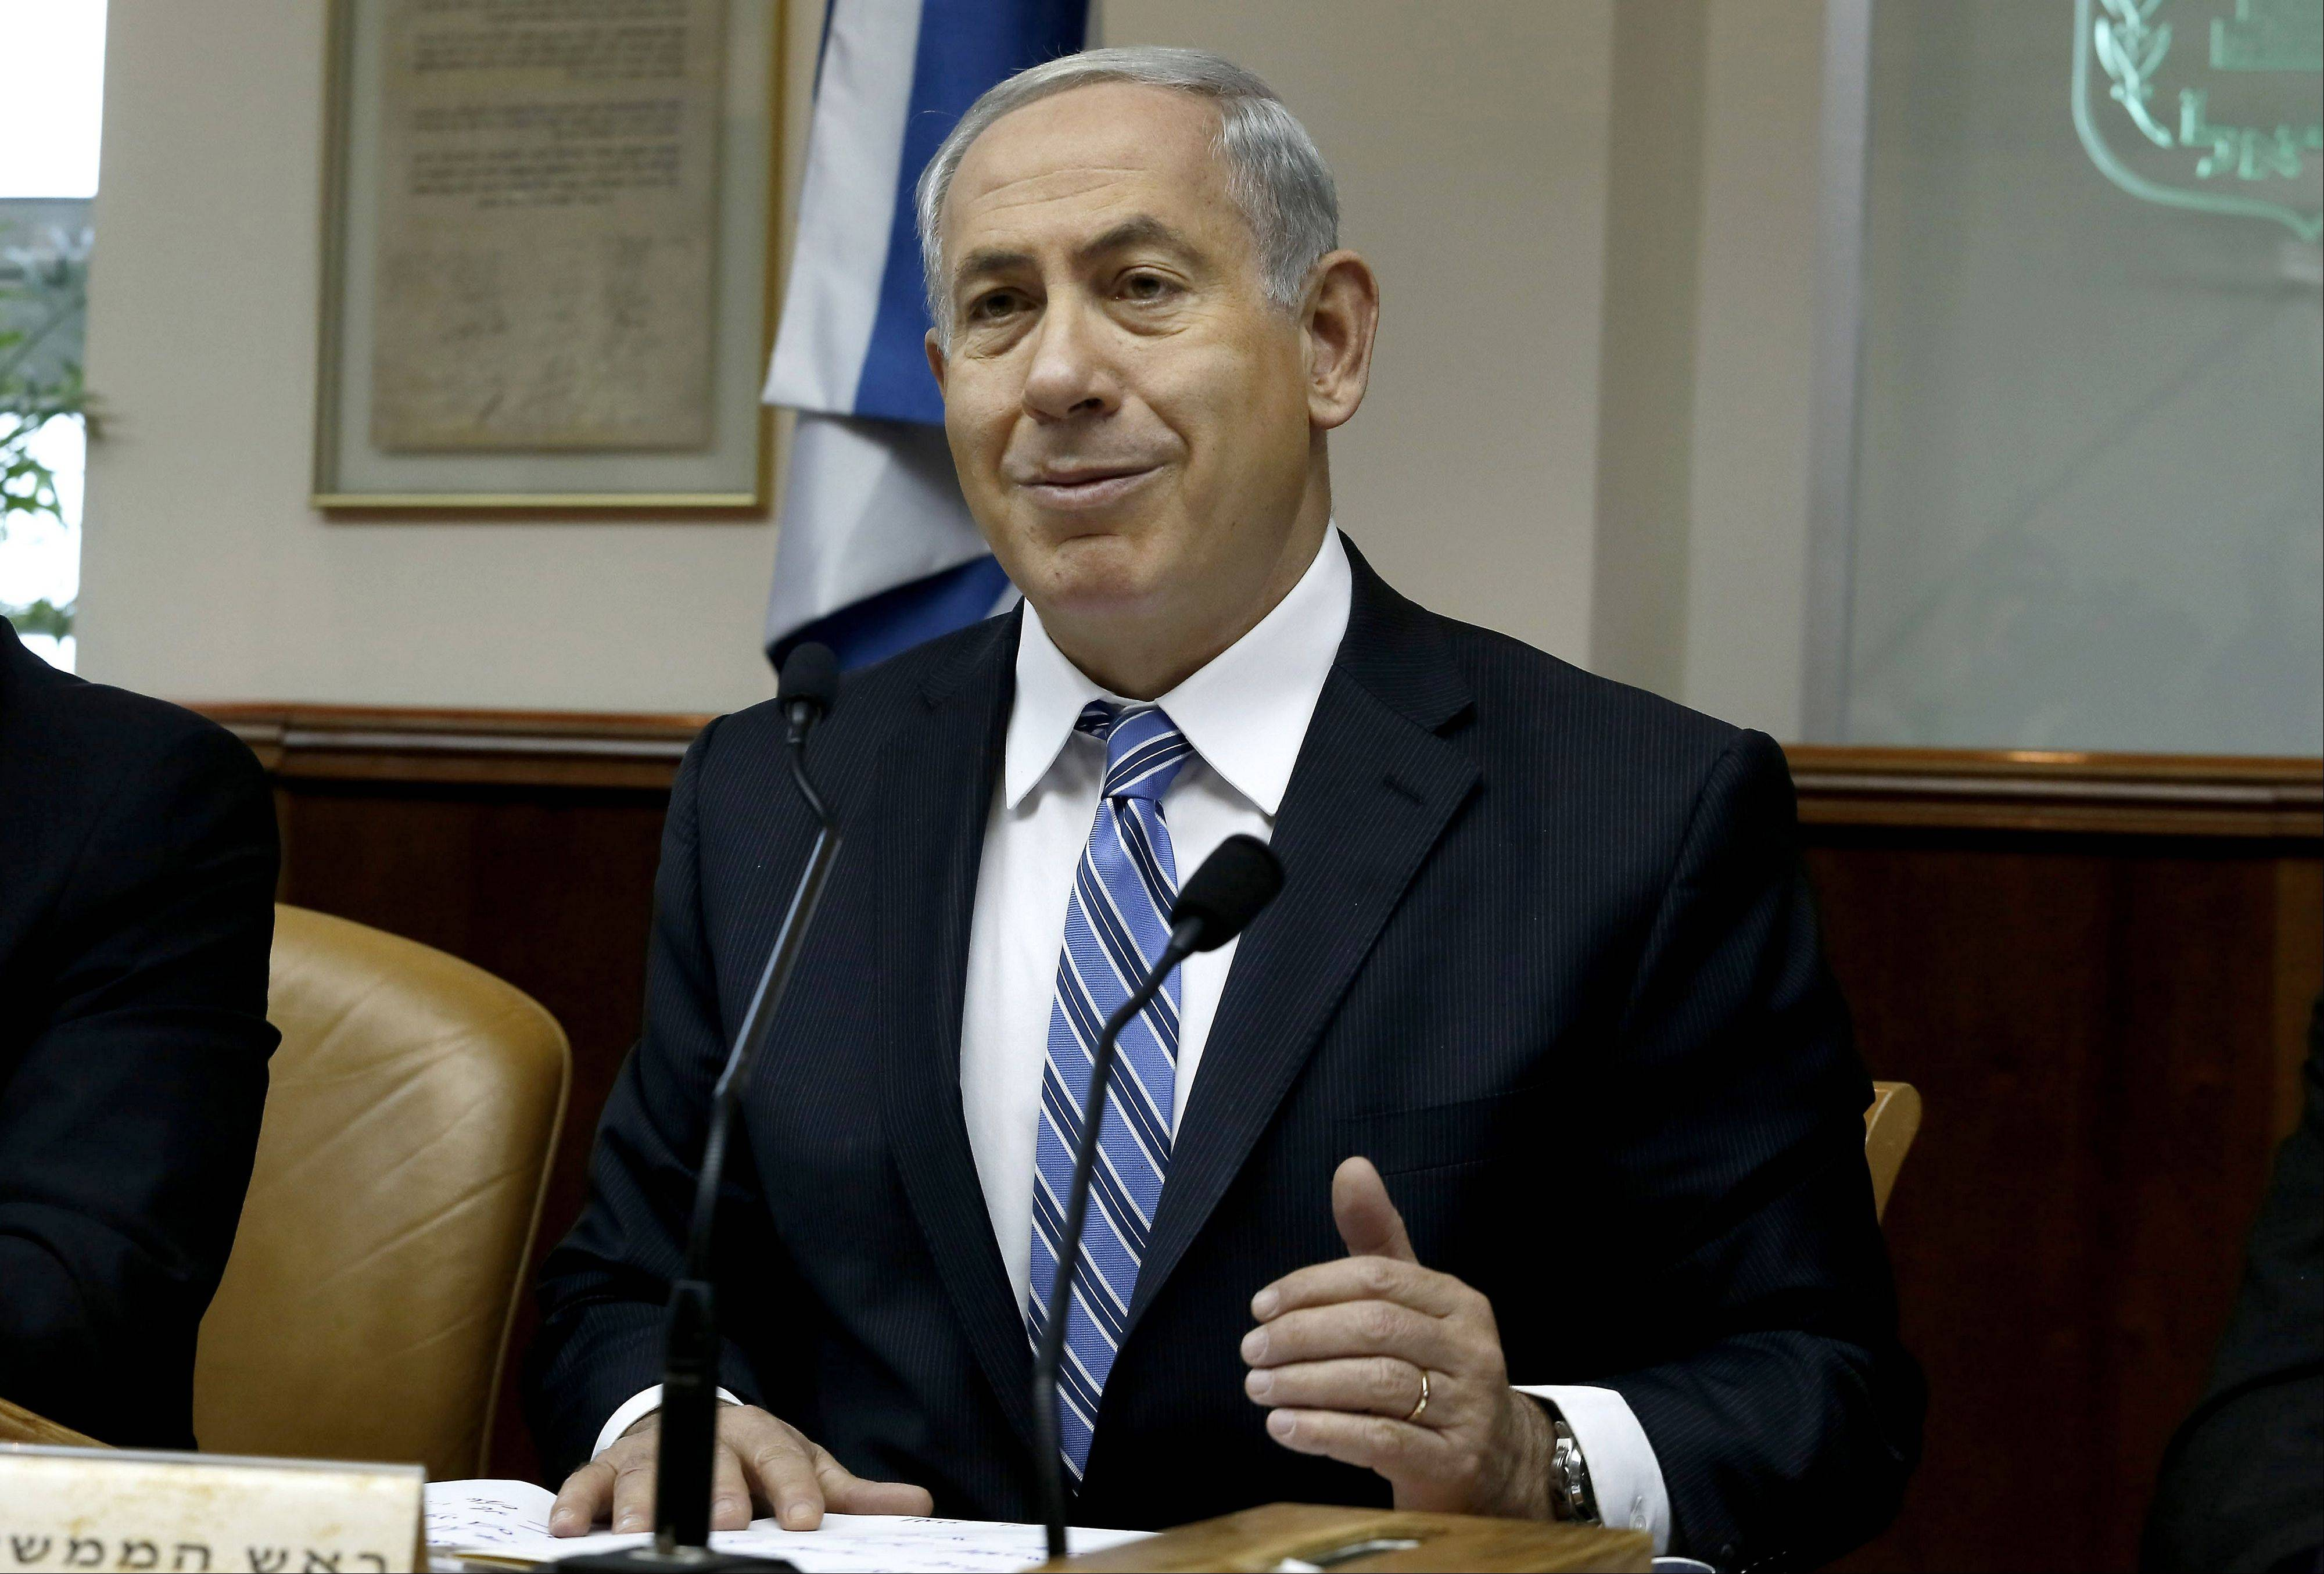 Israeli Prime Minister Benjamin Netanyahu, seen here, and U.S. Secretary of State John Kerry sparred over peacemaking, as a global campaign to sanction the Jewish state for its settlements gains momentum.